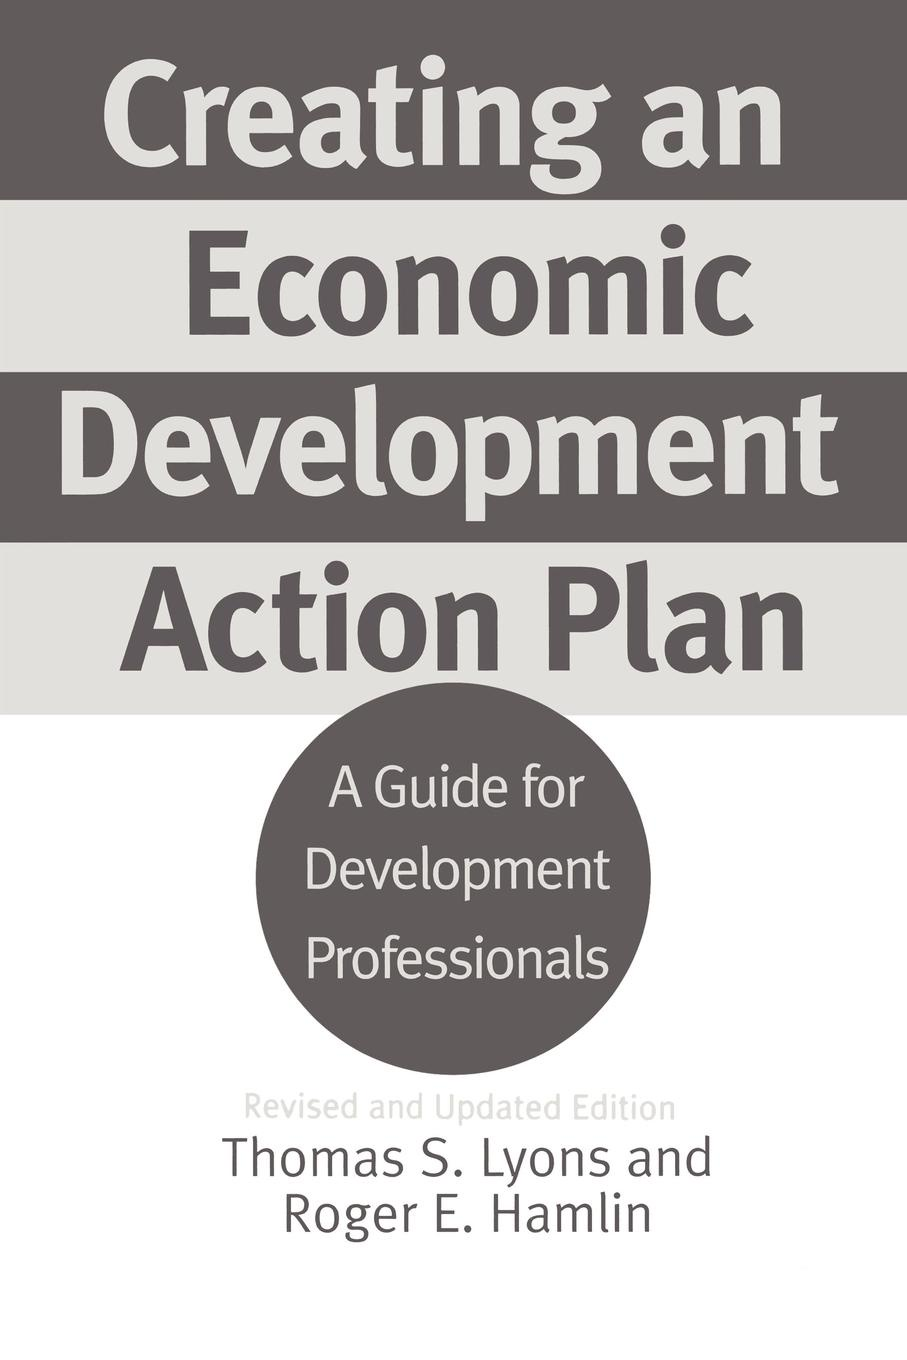 Thomas S. Lyons, Roger E. Hamlin Creating an Economic Development Action Plan. A Guide for Professionals Revised and Updated Edition